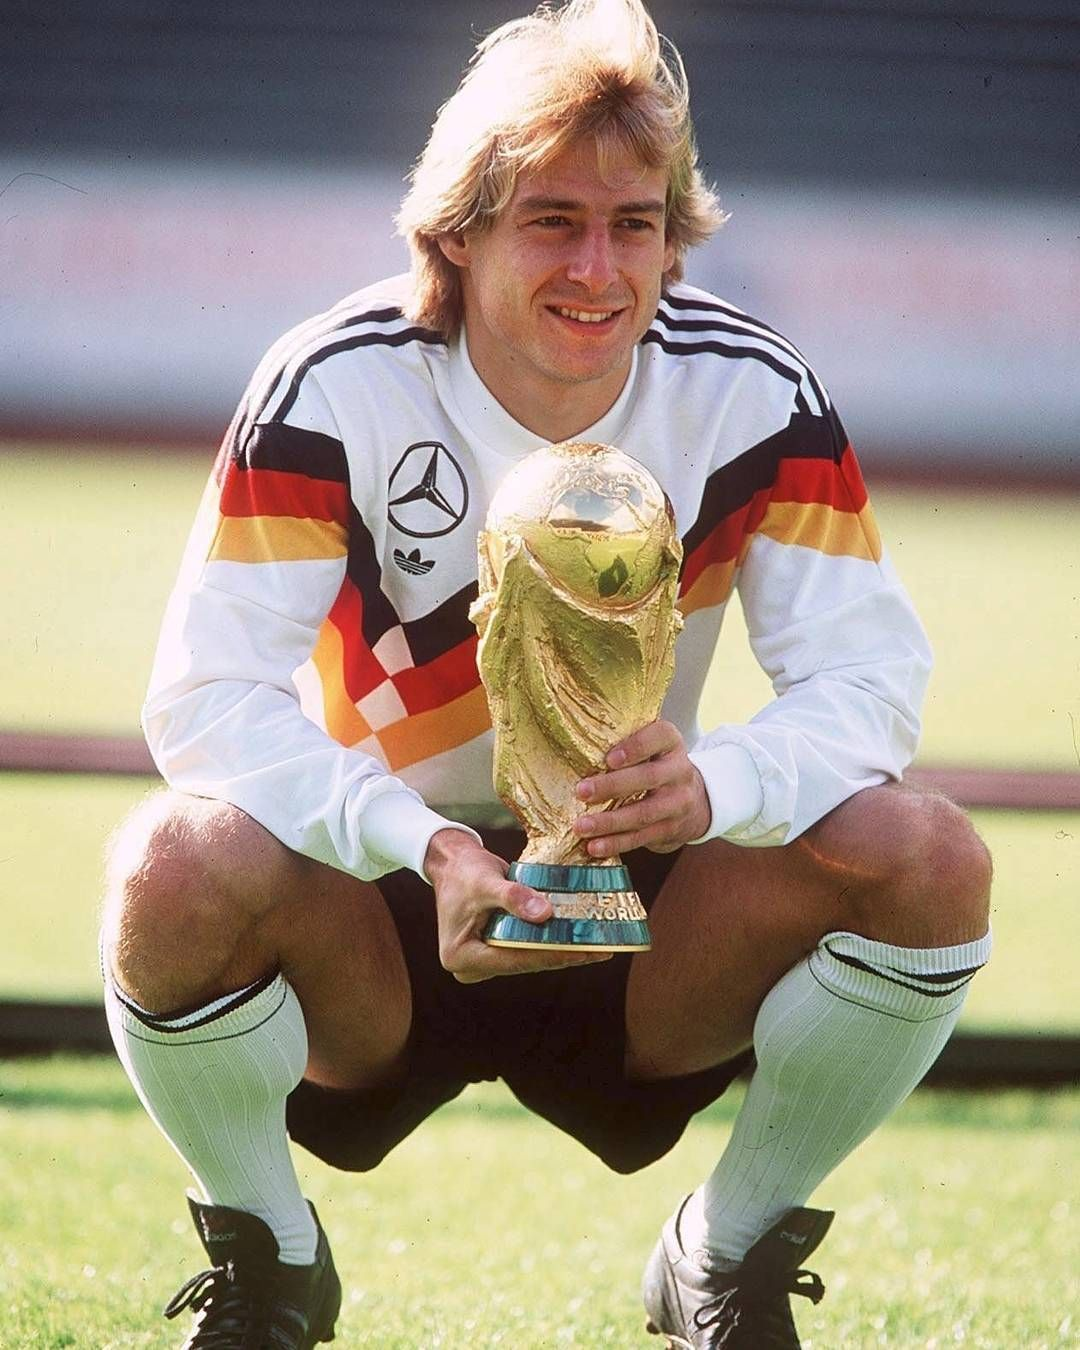 Jürgen Klinsmann | Germany football, European soccer players, Best football  players